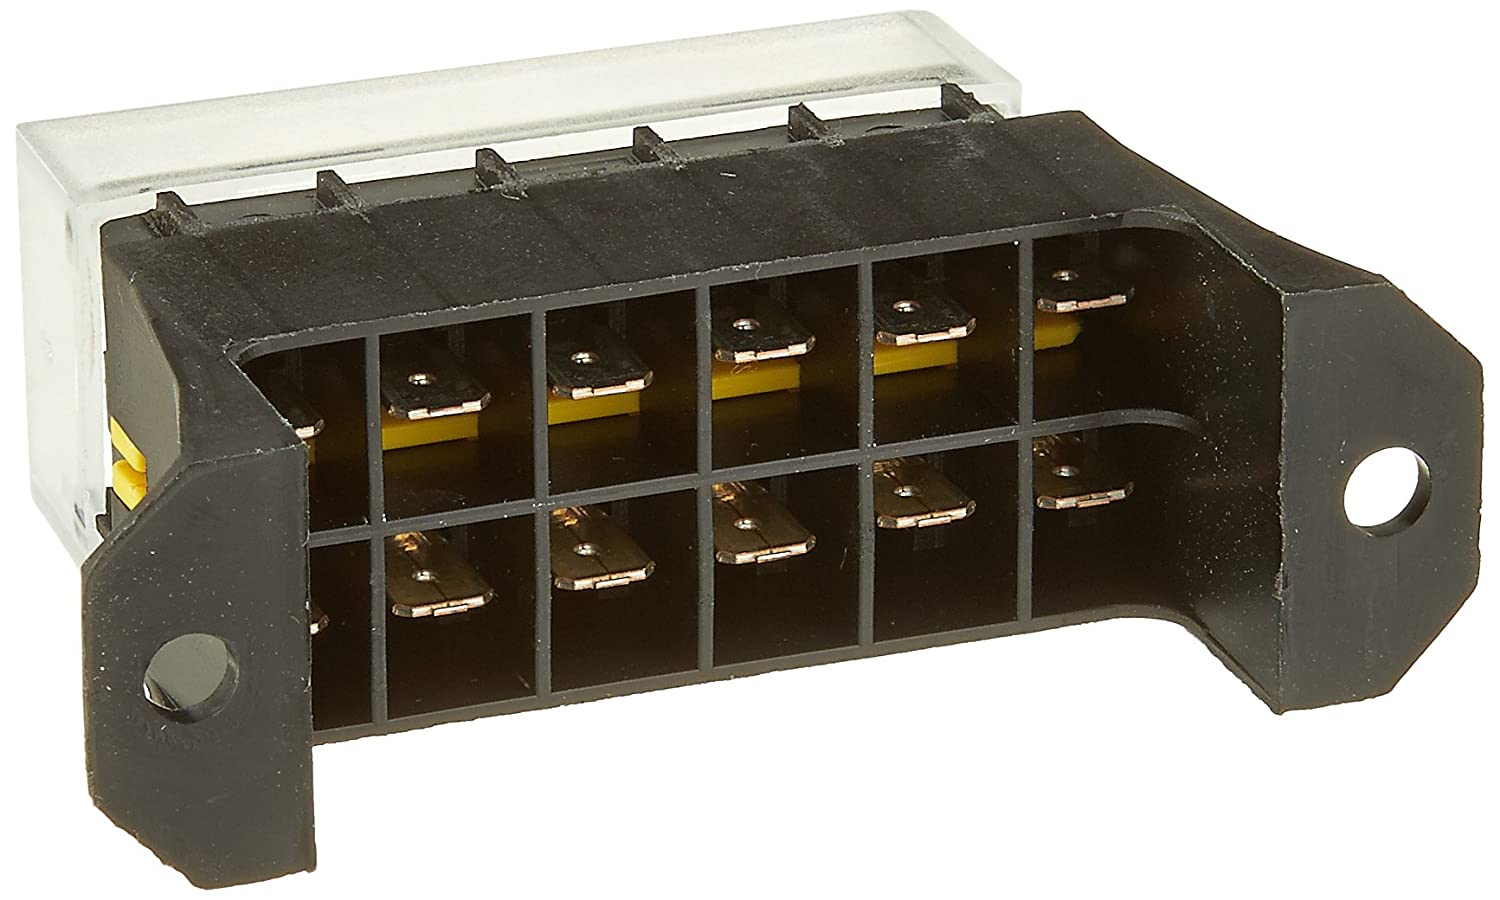 71aUQ89jP0L._SL1500_ amazon com hella h84960081 6 way axial single fuse box automotive Axial Fuse Glass at eliteediting.co